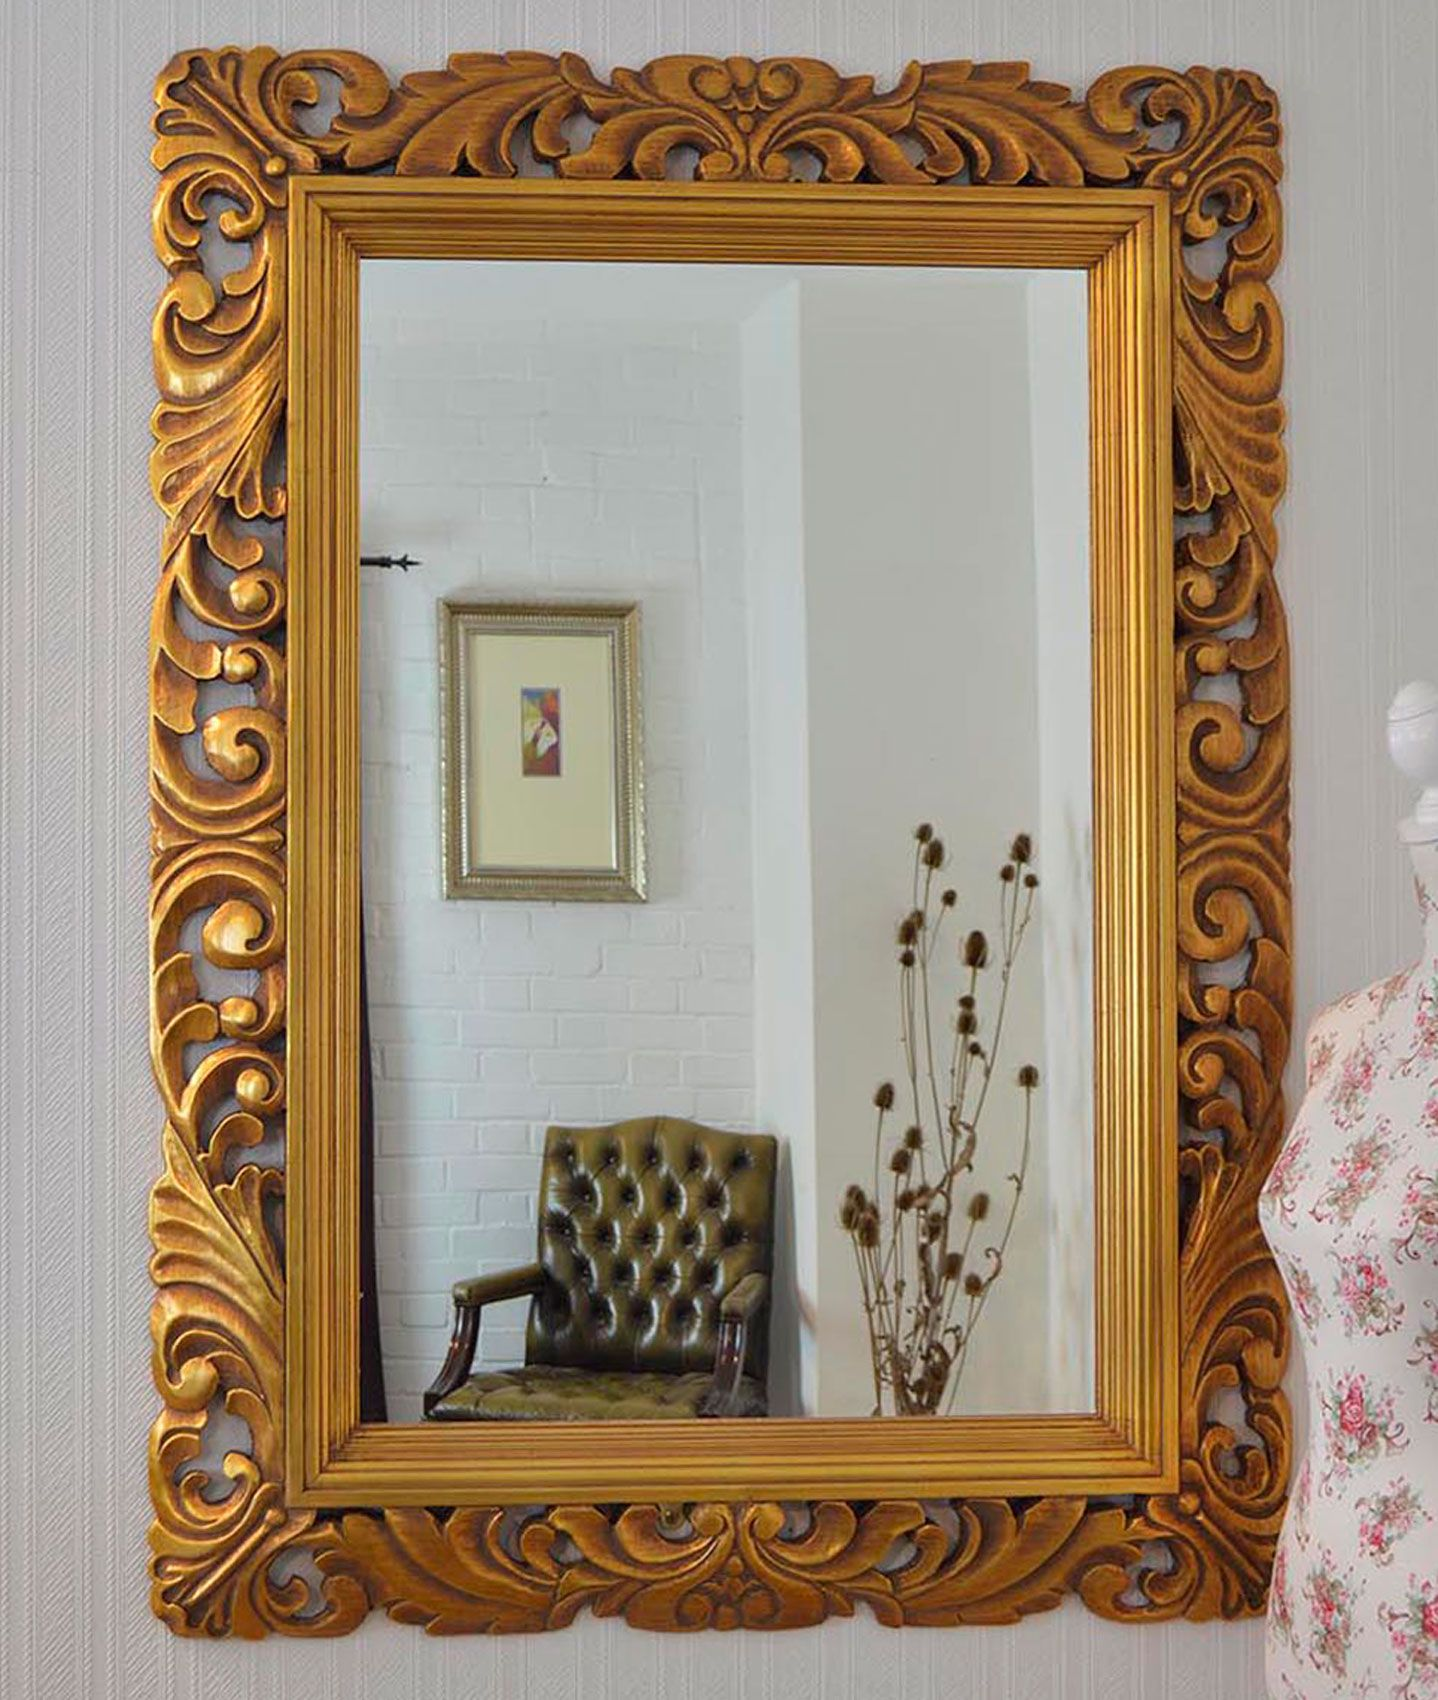 6 Large Ornate Handcarved An Elaborate Solid Wood Carved Frame Is The Perfect Finishing Piece Rustic Wall Mirrors Mirror Wall Living Room Big Wall Mirrors